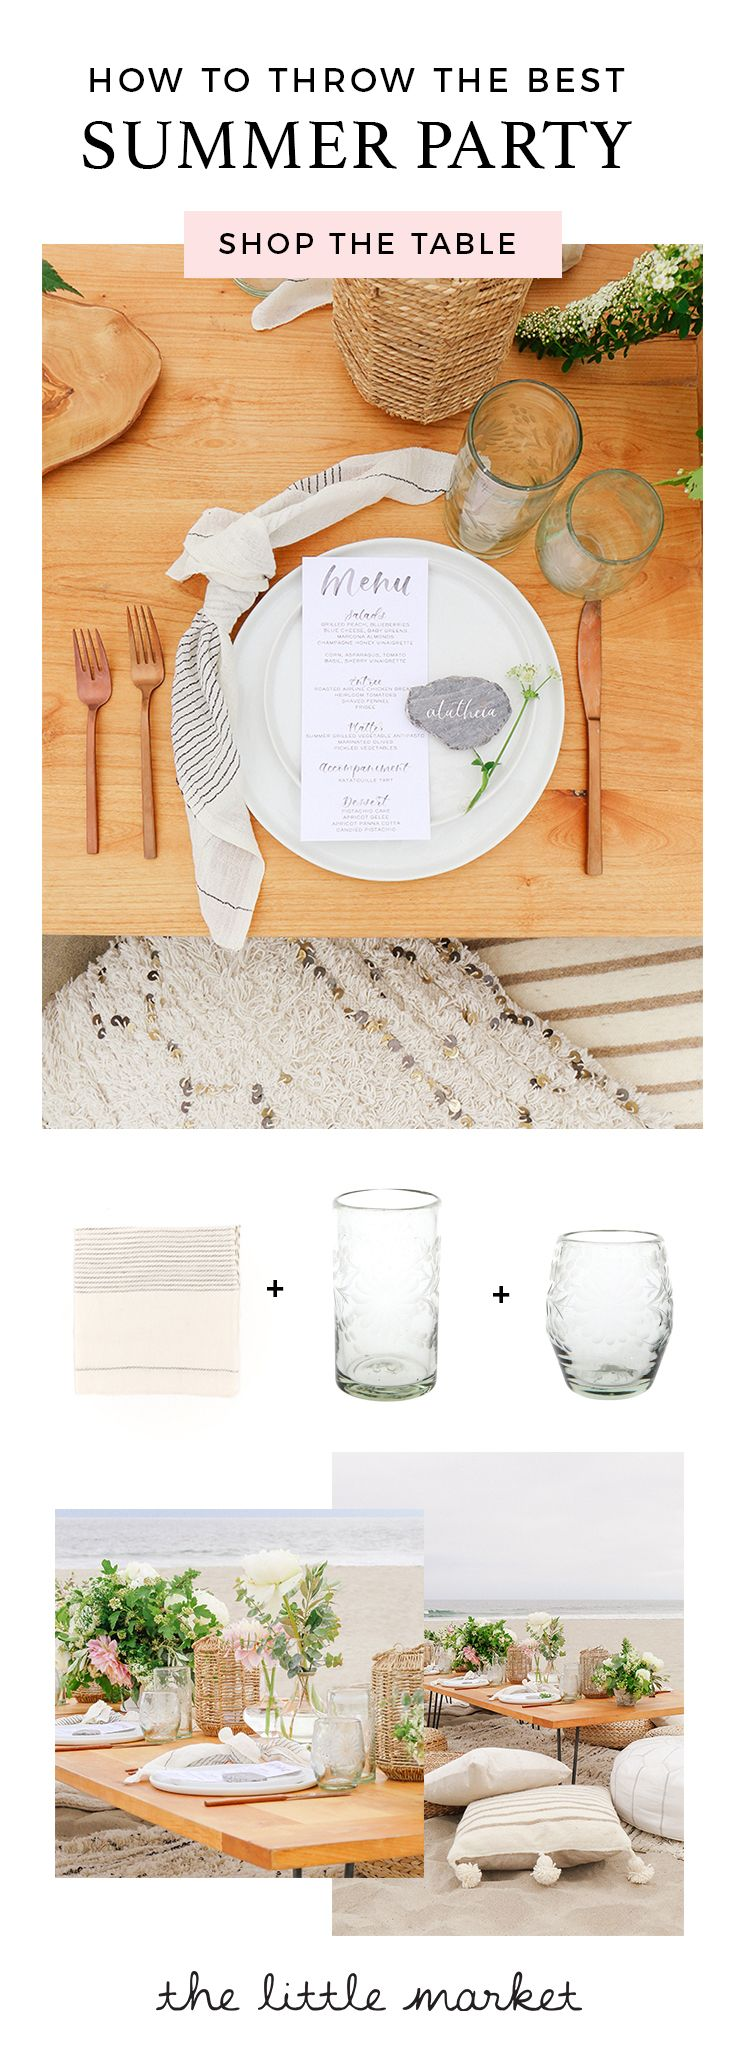 We love the sophisticated touch of our hand-etched glassware and chic pinstripe napkin to this summer dinner party from the Glitter Guide.